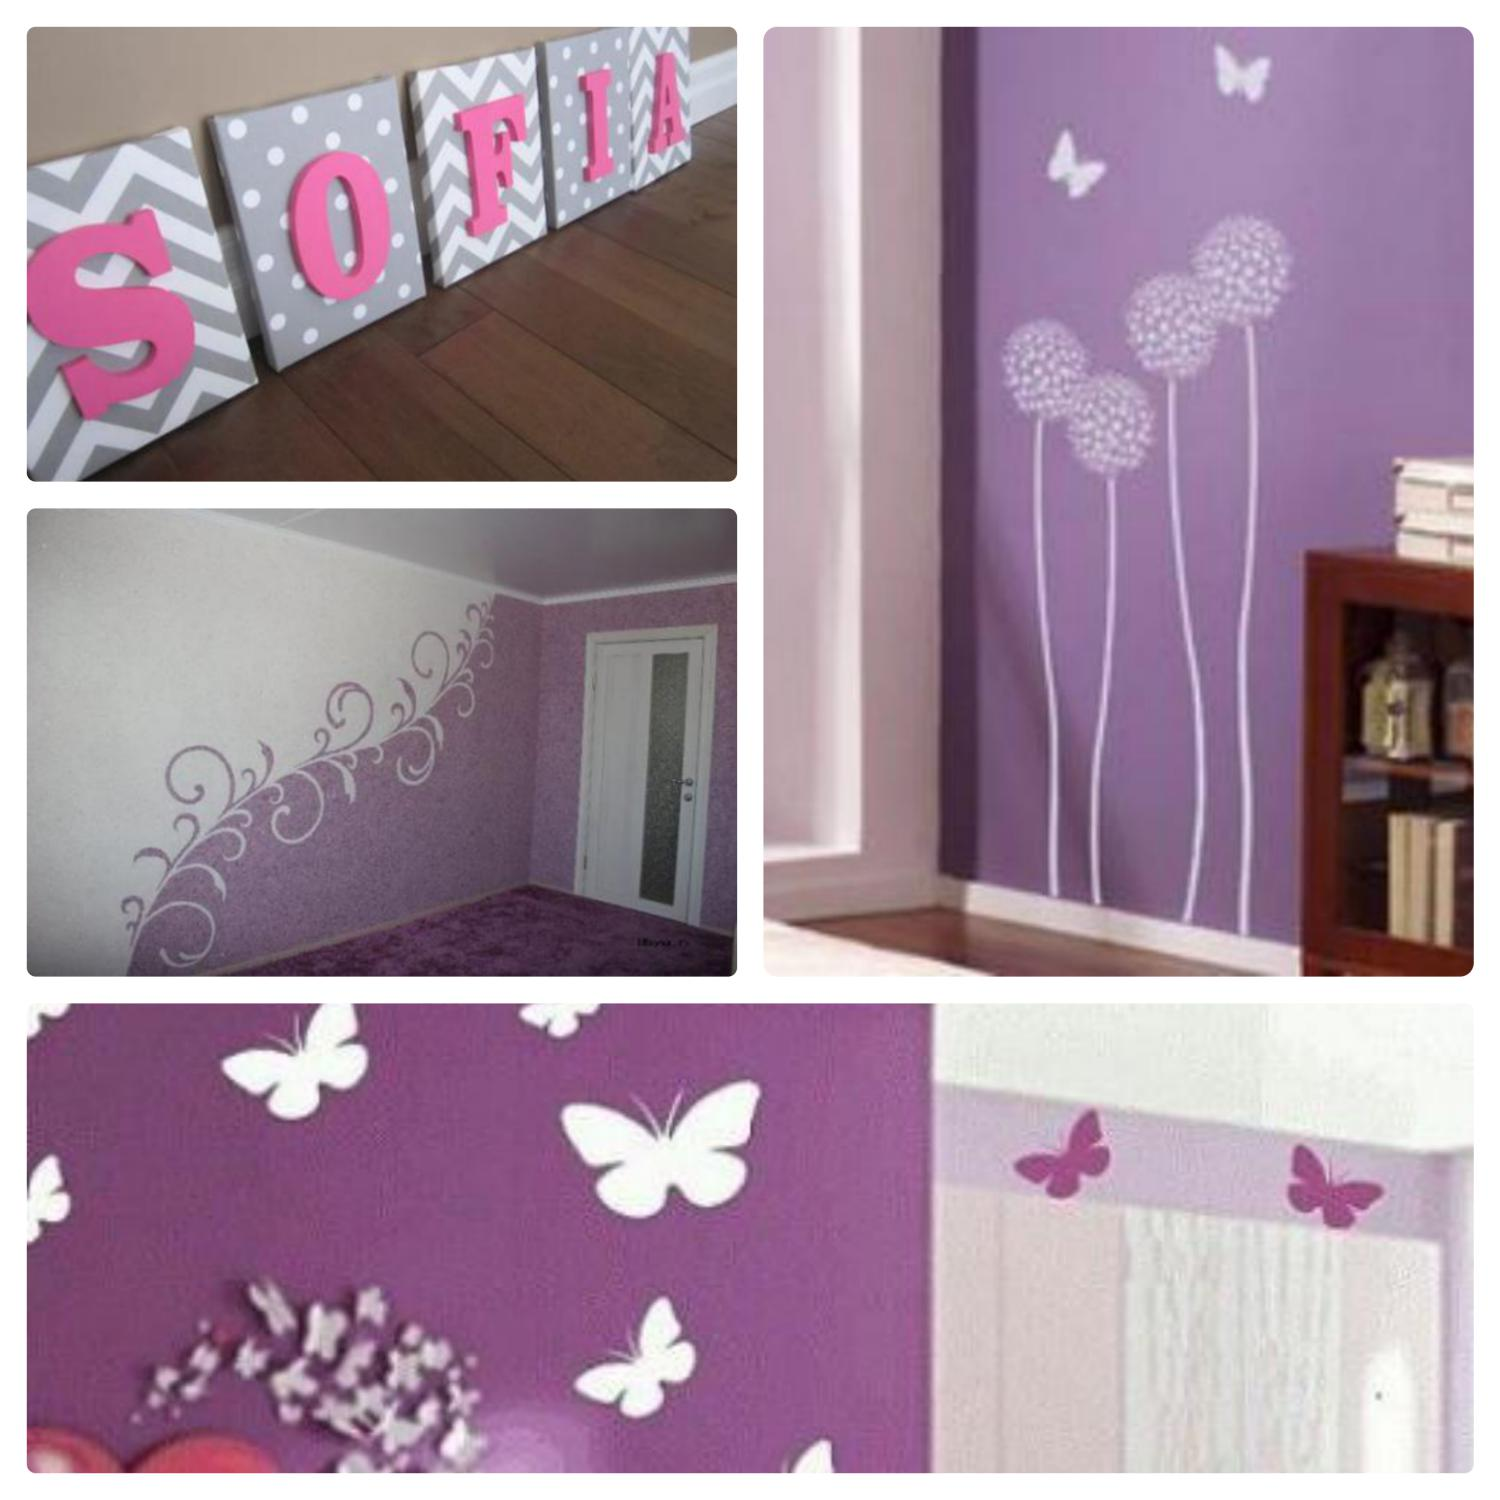 Ideas para decorar una rec mara con motivos de princesita for Ideas para decorar una recamara